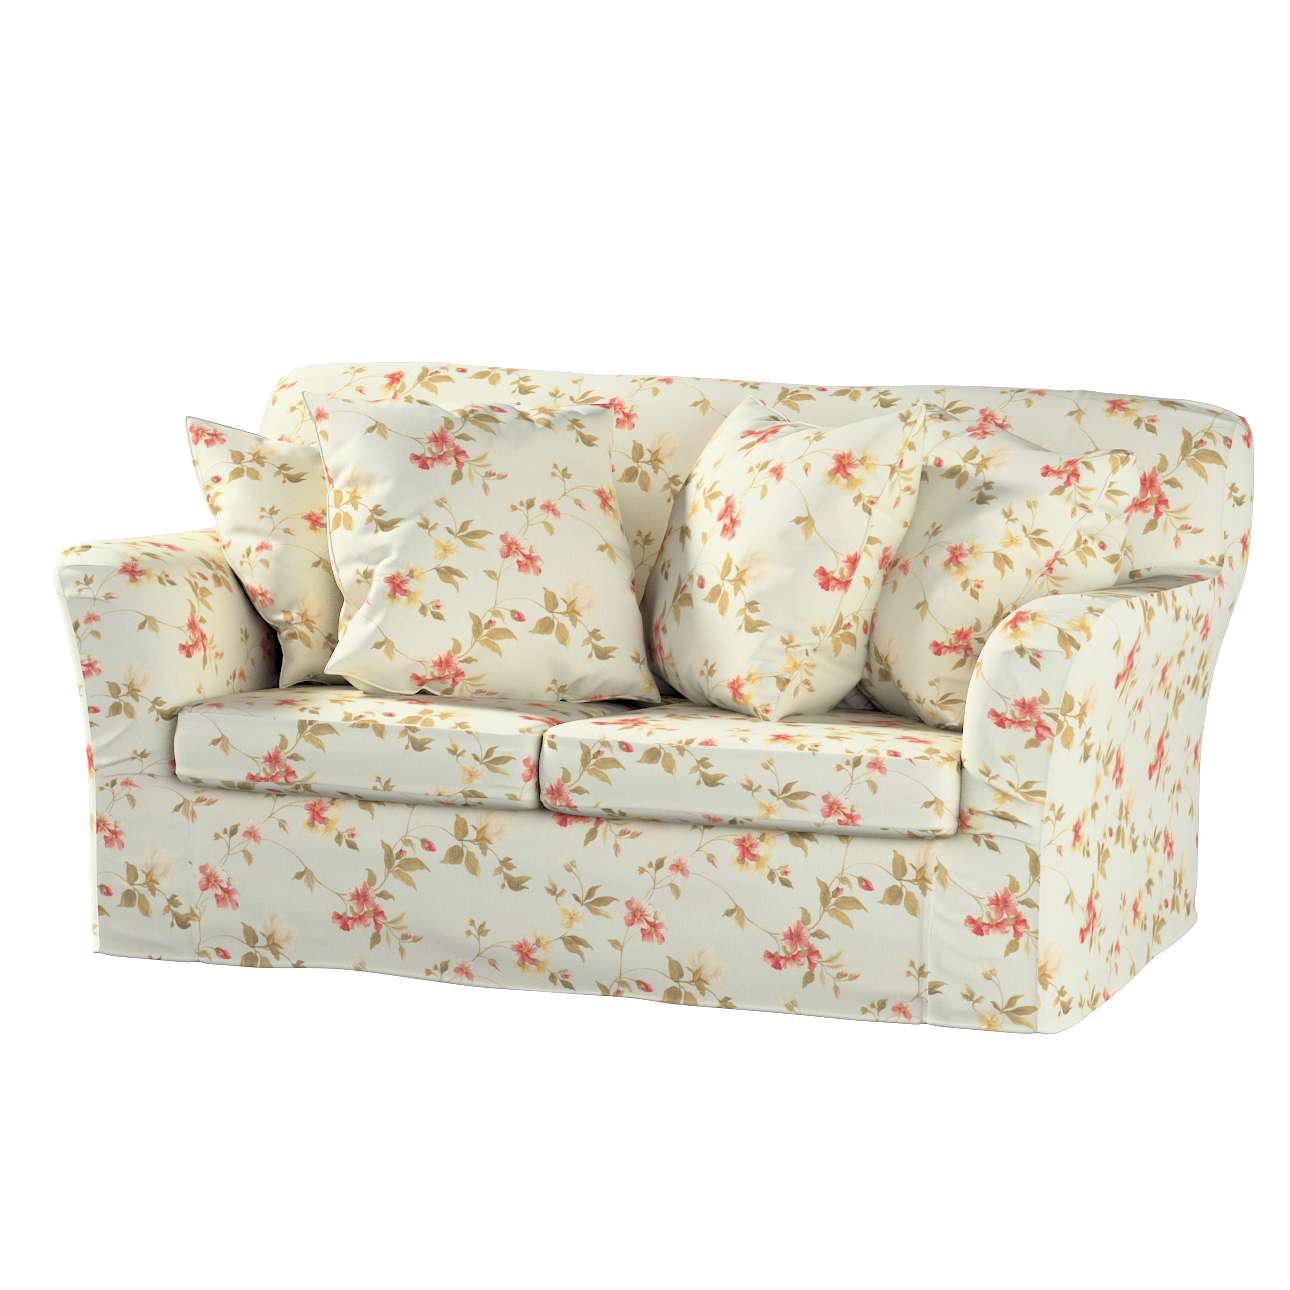 Stupendous Tomelilla 2 Seater Sofa Cover Bralicious Painted Fabric Chair Ideas Braliciousco